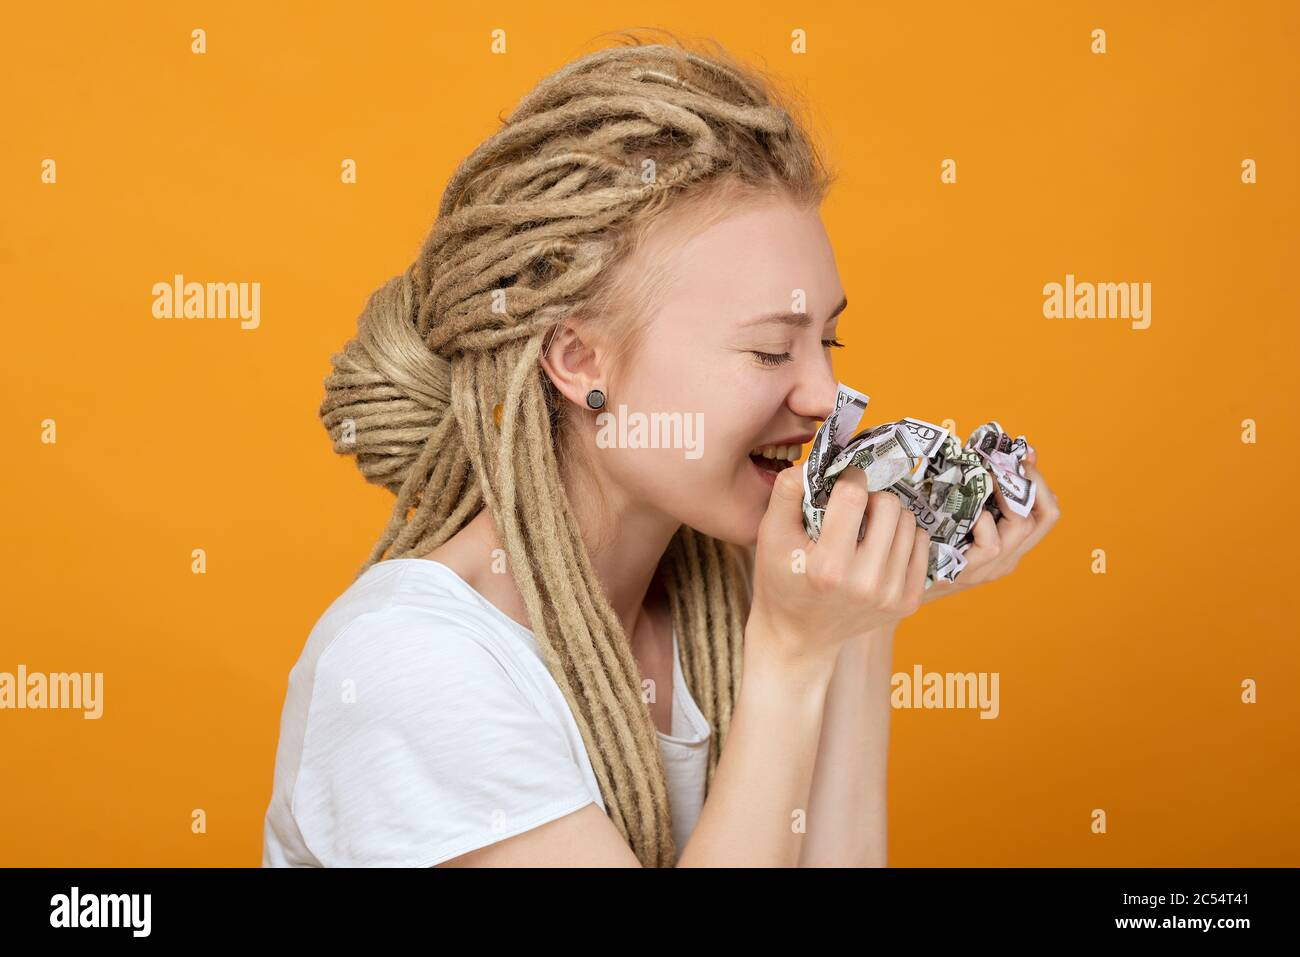 girl holds crumpled money and wants to eat it, playful mood, unusual hairstyle, white dreadlocks Stock Photo